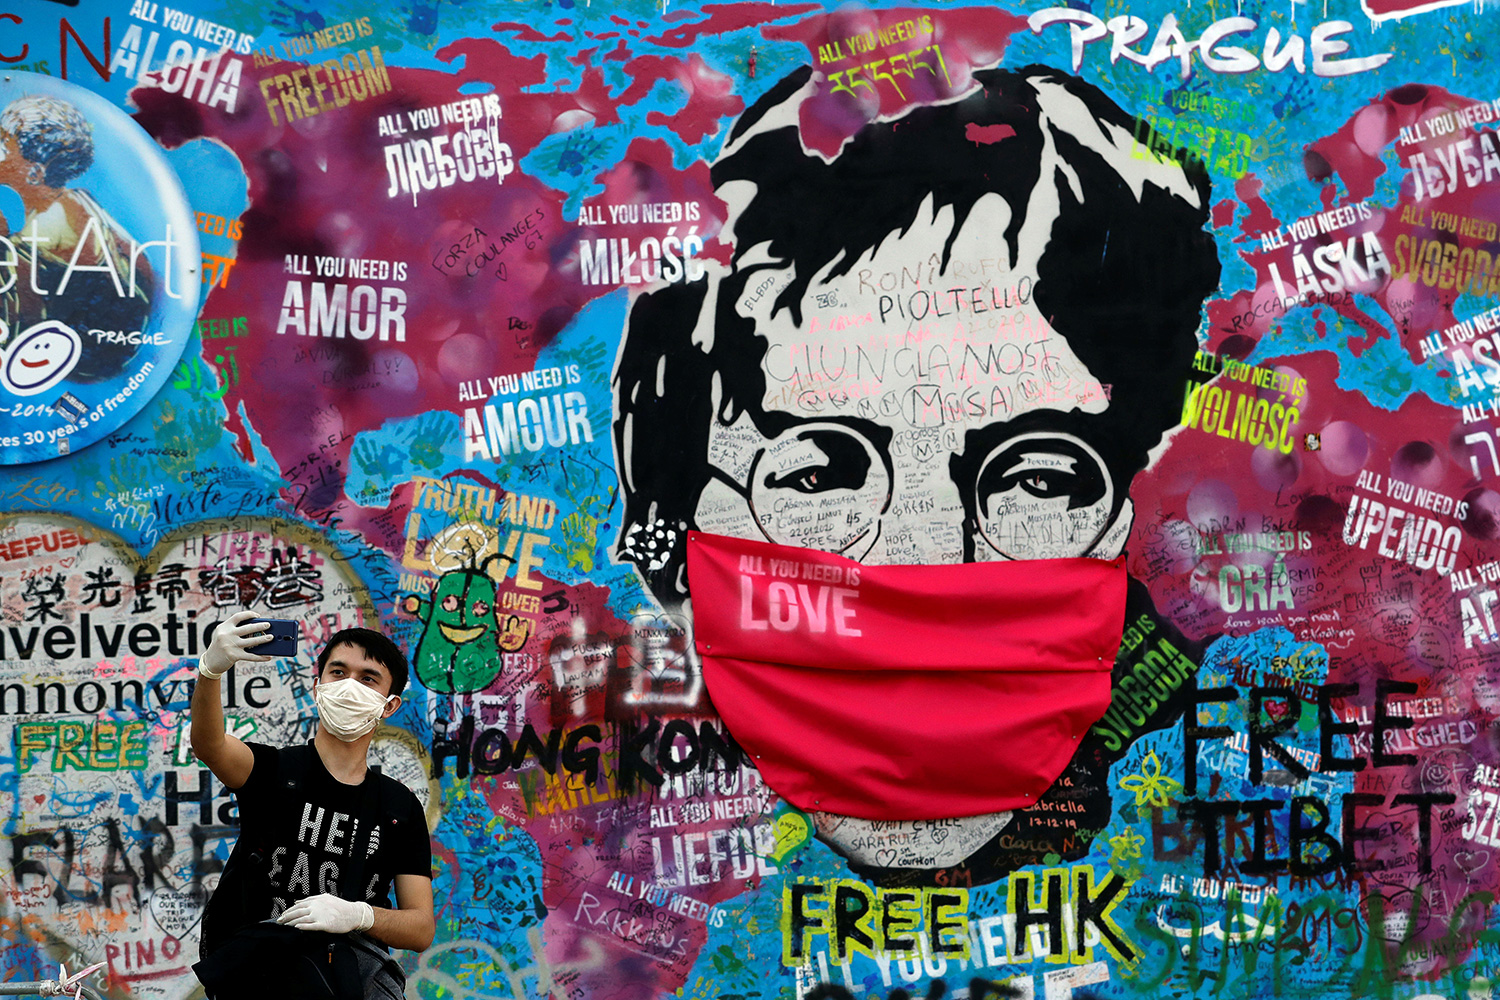 A man wearing a facemask takes a selfie in front of the legendary graffiti-covered John Lennon Wall as the coronavirus pandemic continues in Prague, Czech Republic, April 6, 2020. The photo shows a large graffiti mural of the legendary singer and peace activist with a mask draped over Lennon's face. A mane in the foreground holds his device at arm's length taking a selfie. REUTERS/David W Cerny